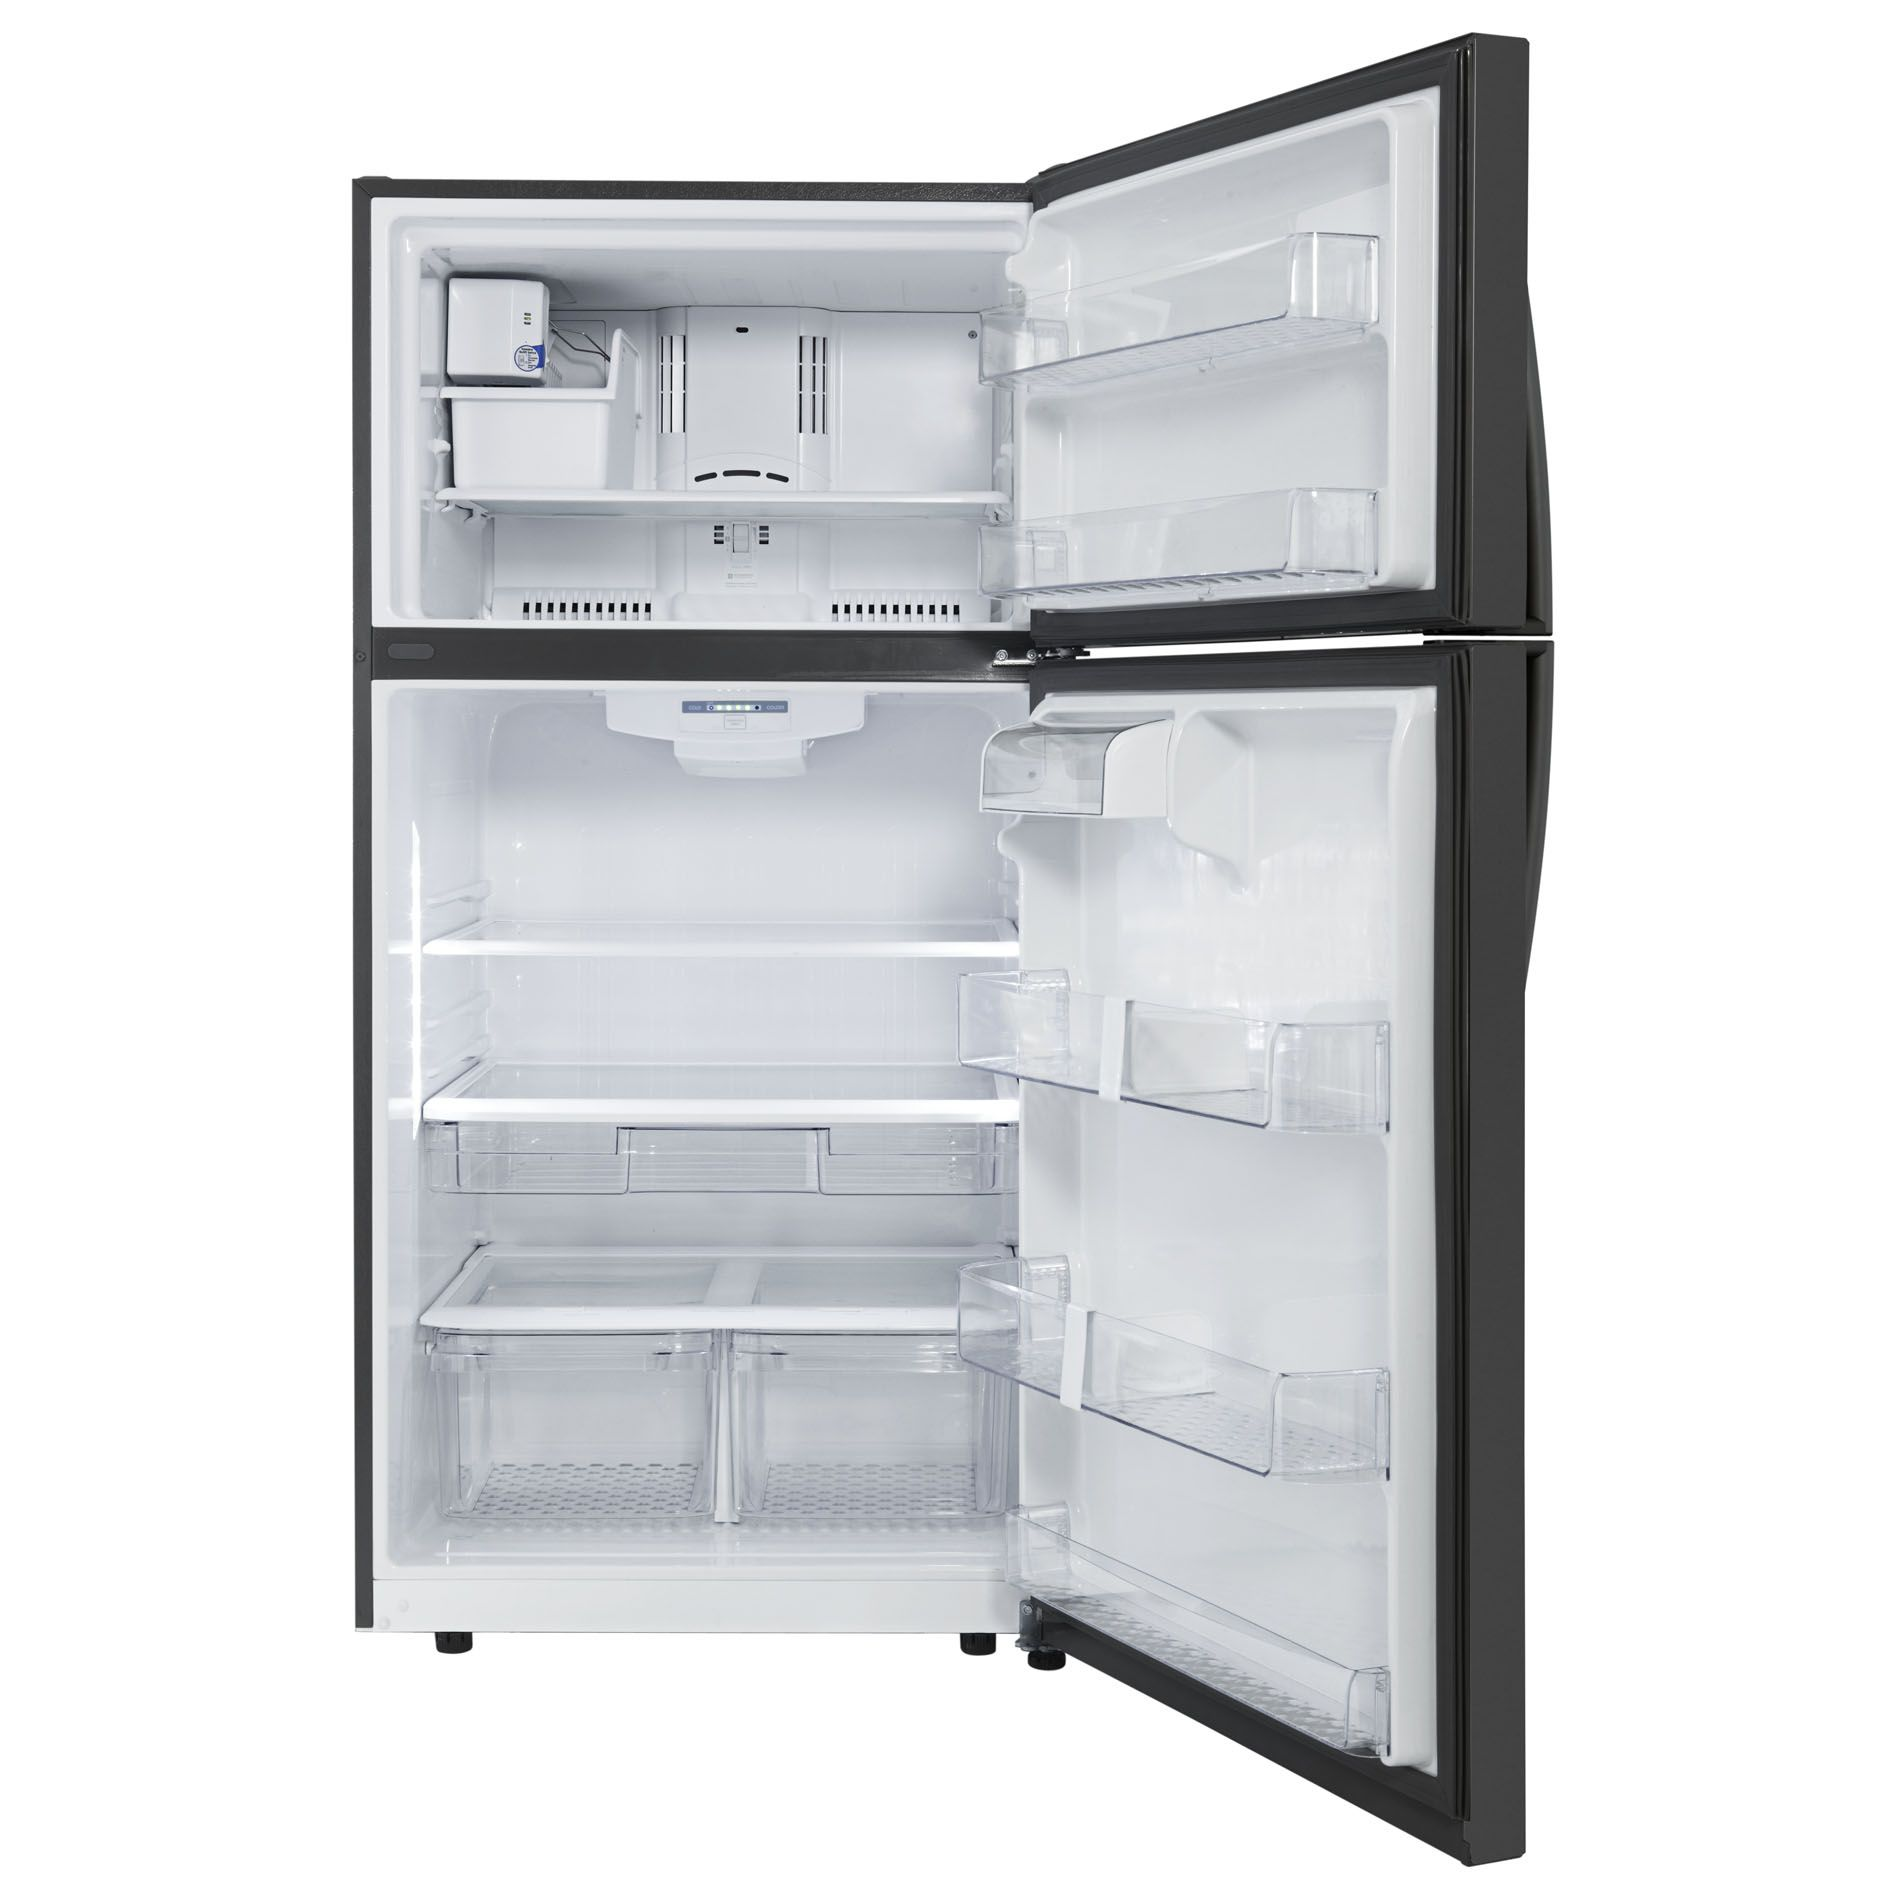 Kenmore 78039 23.8 cu. ft. Top-Freezer Refrigerator w/ Icemaker - Black